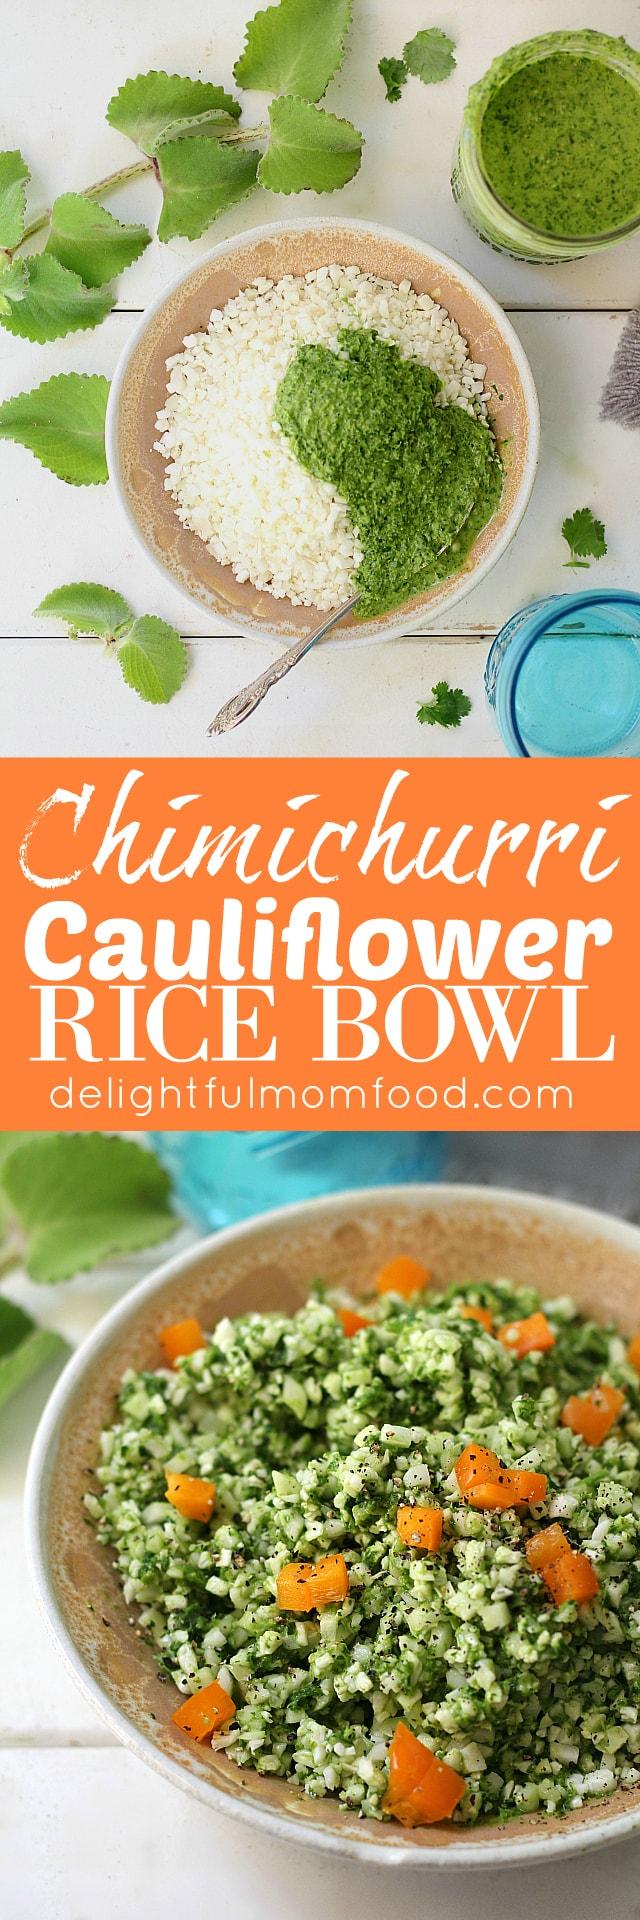 chimichurri cauliflower rice bowl